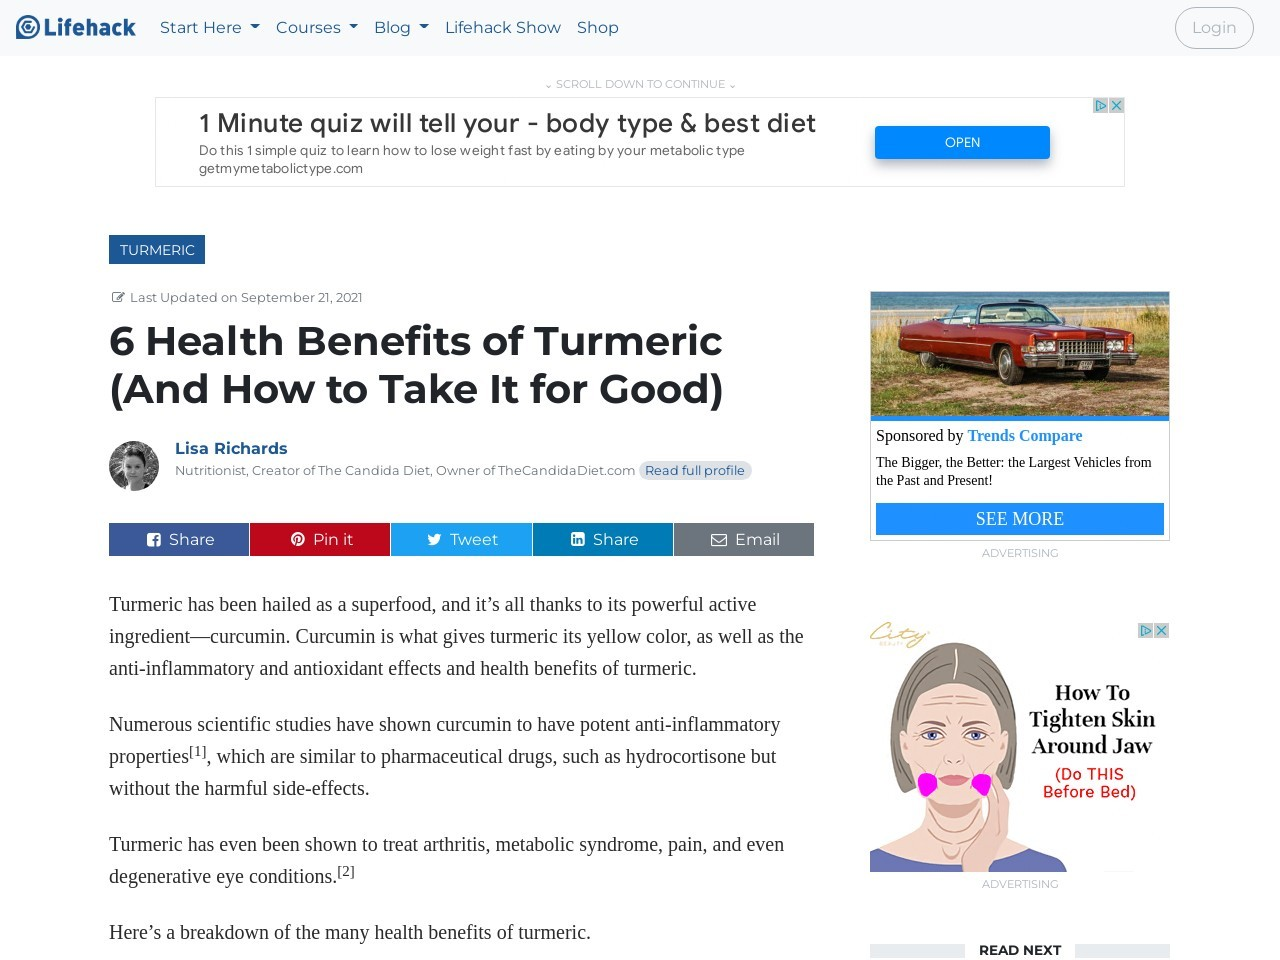 6 Health Benefits of Tumeric (And How to Take It For Good)